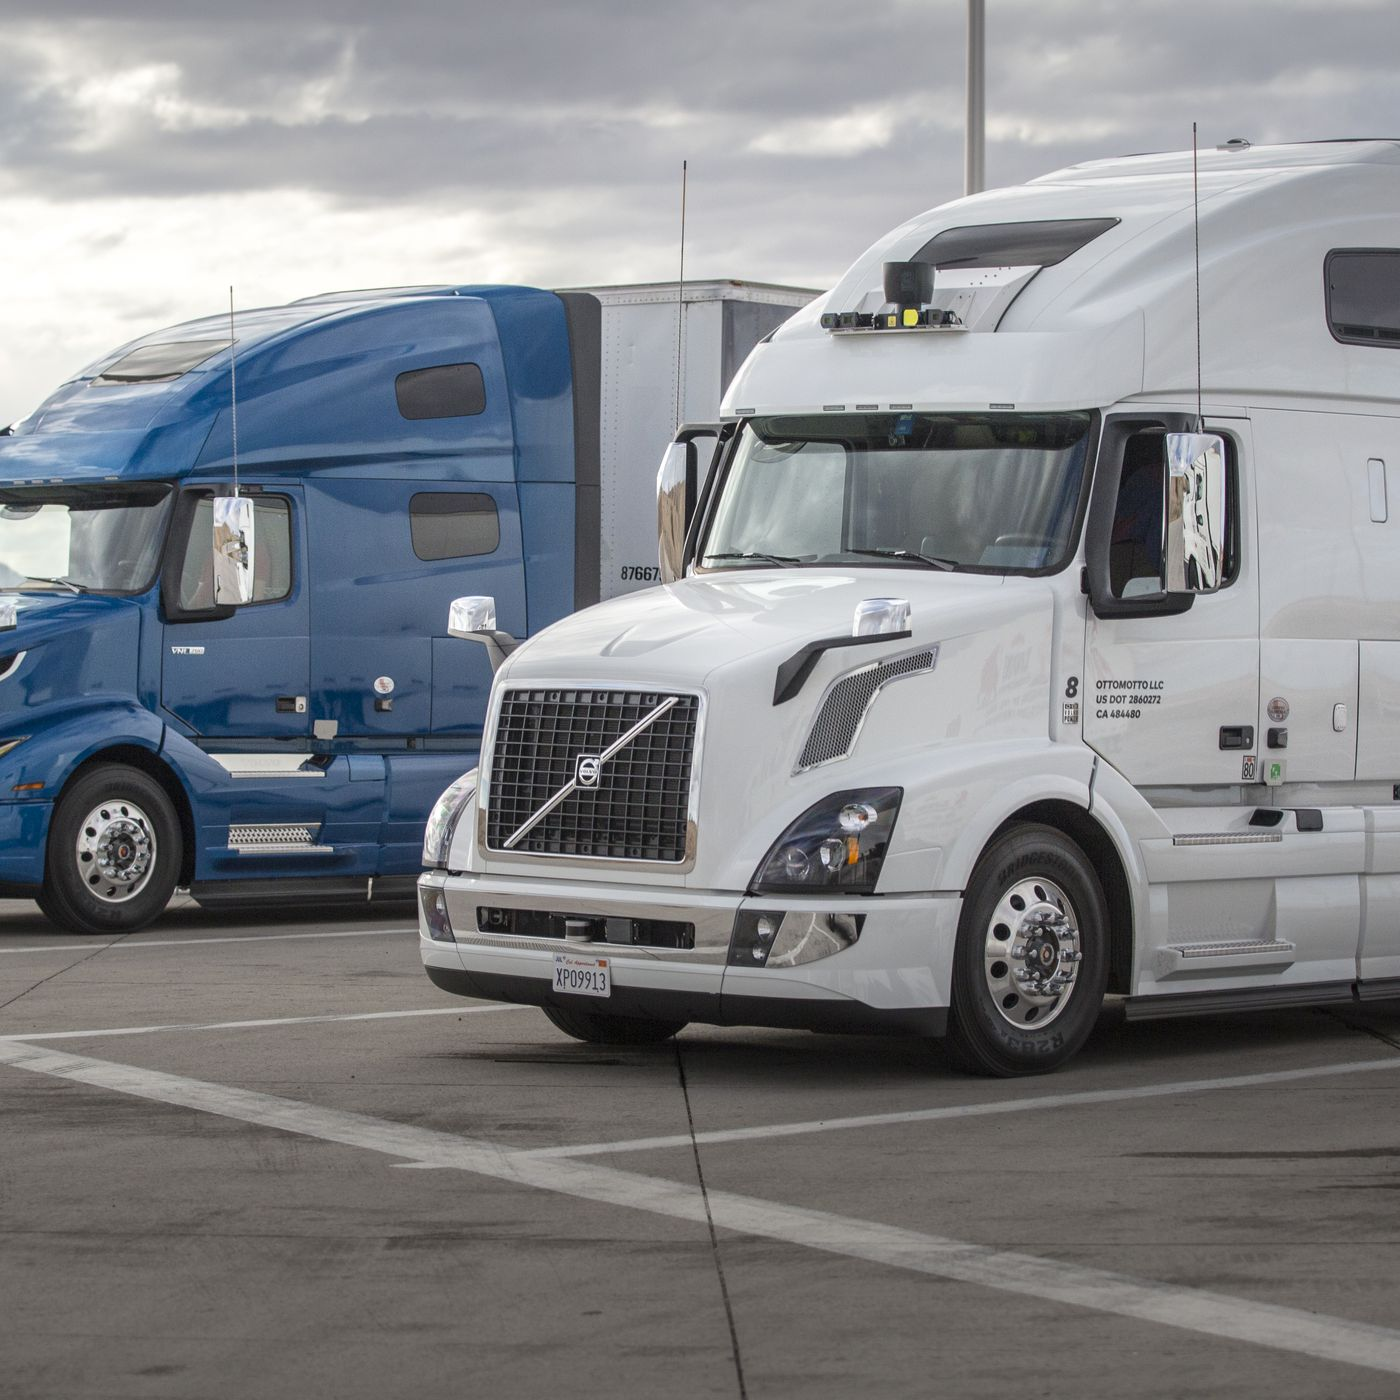 Uber's self-driving trucks are now delivering freight in